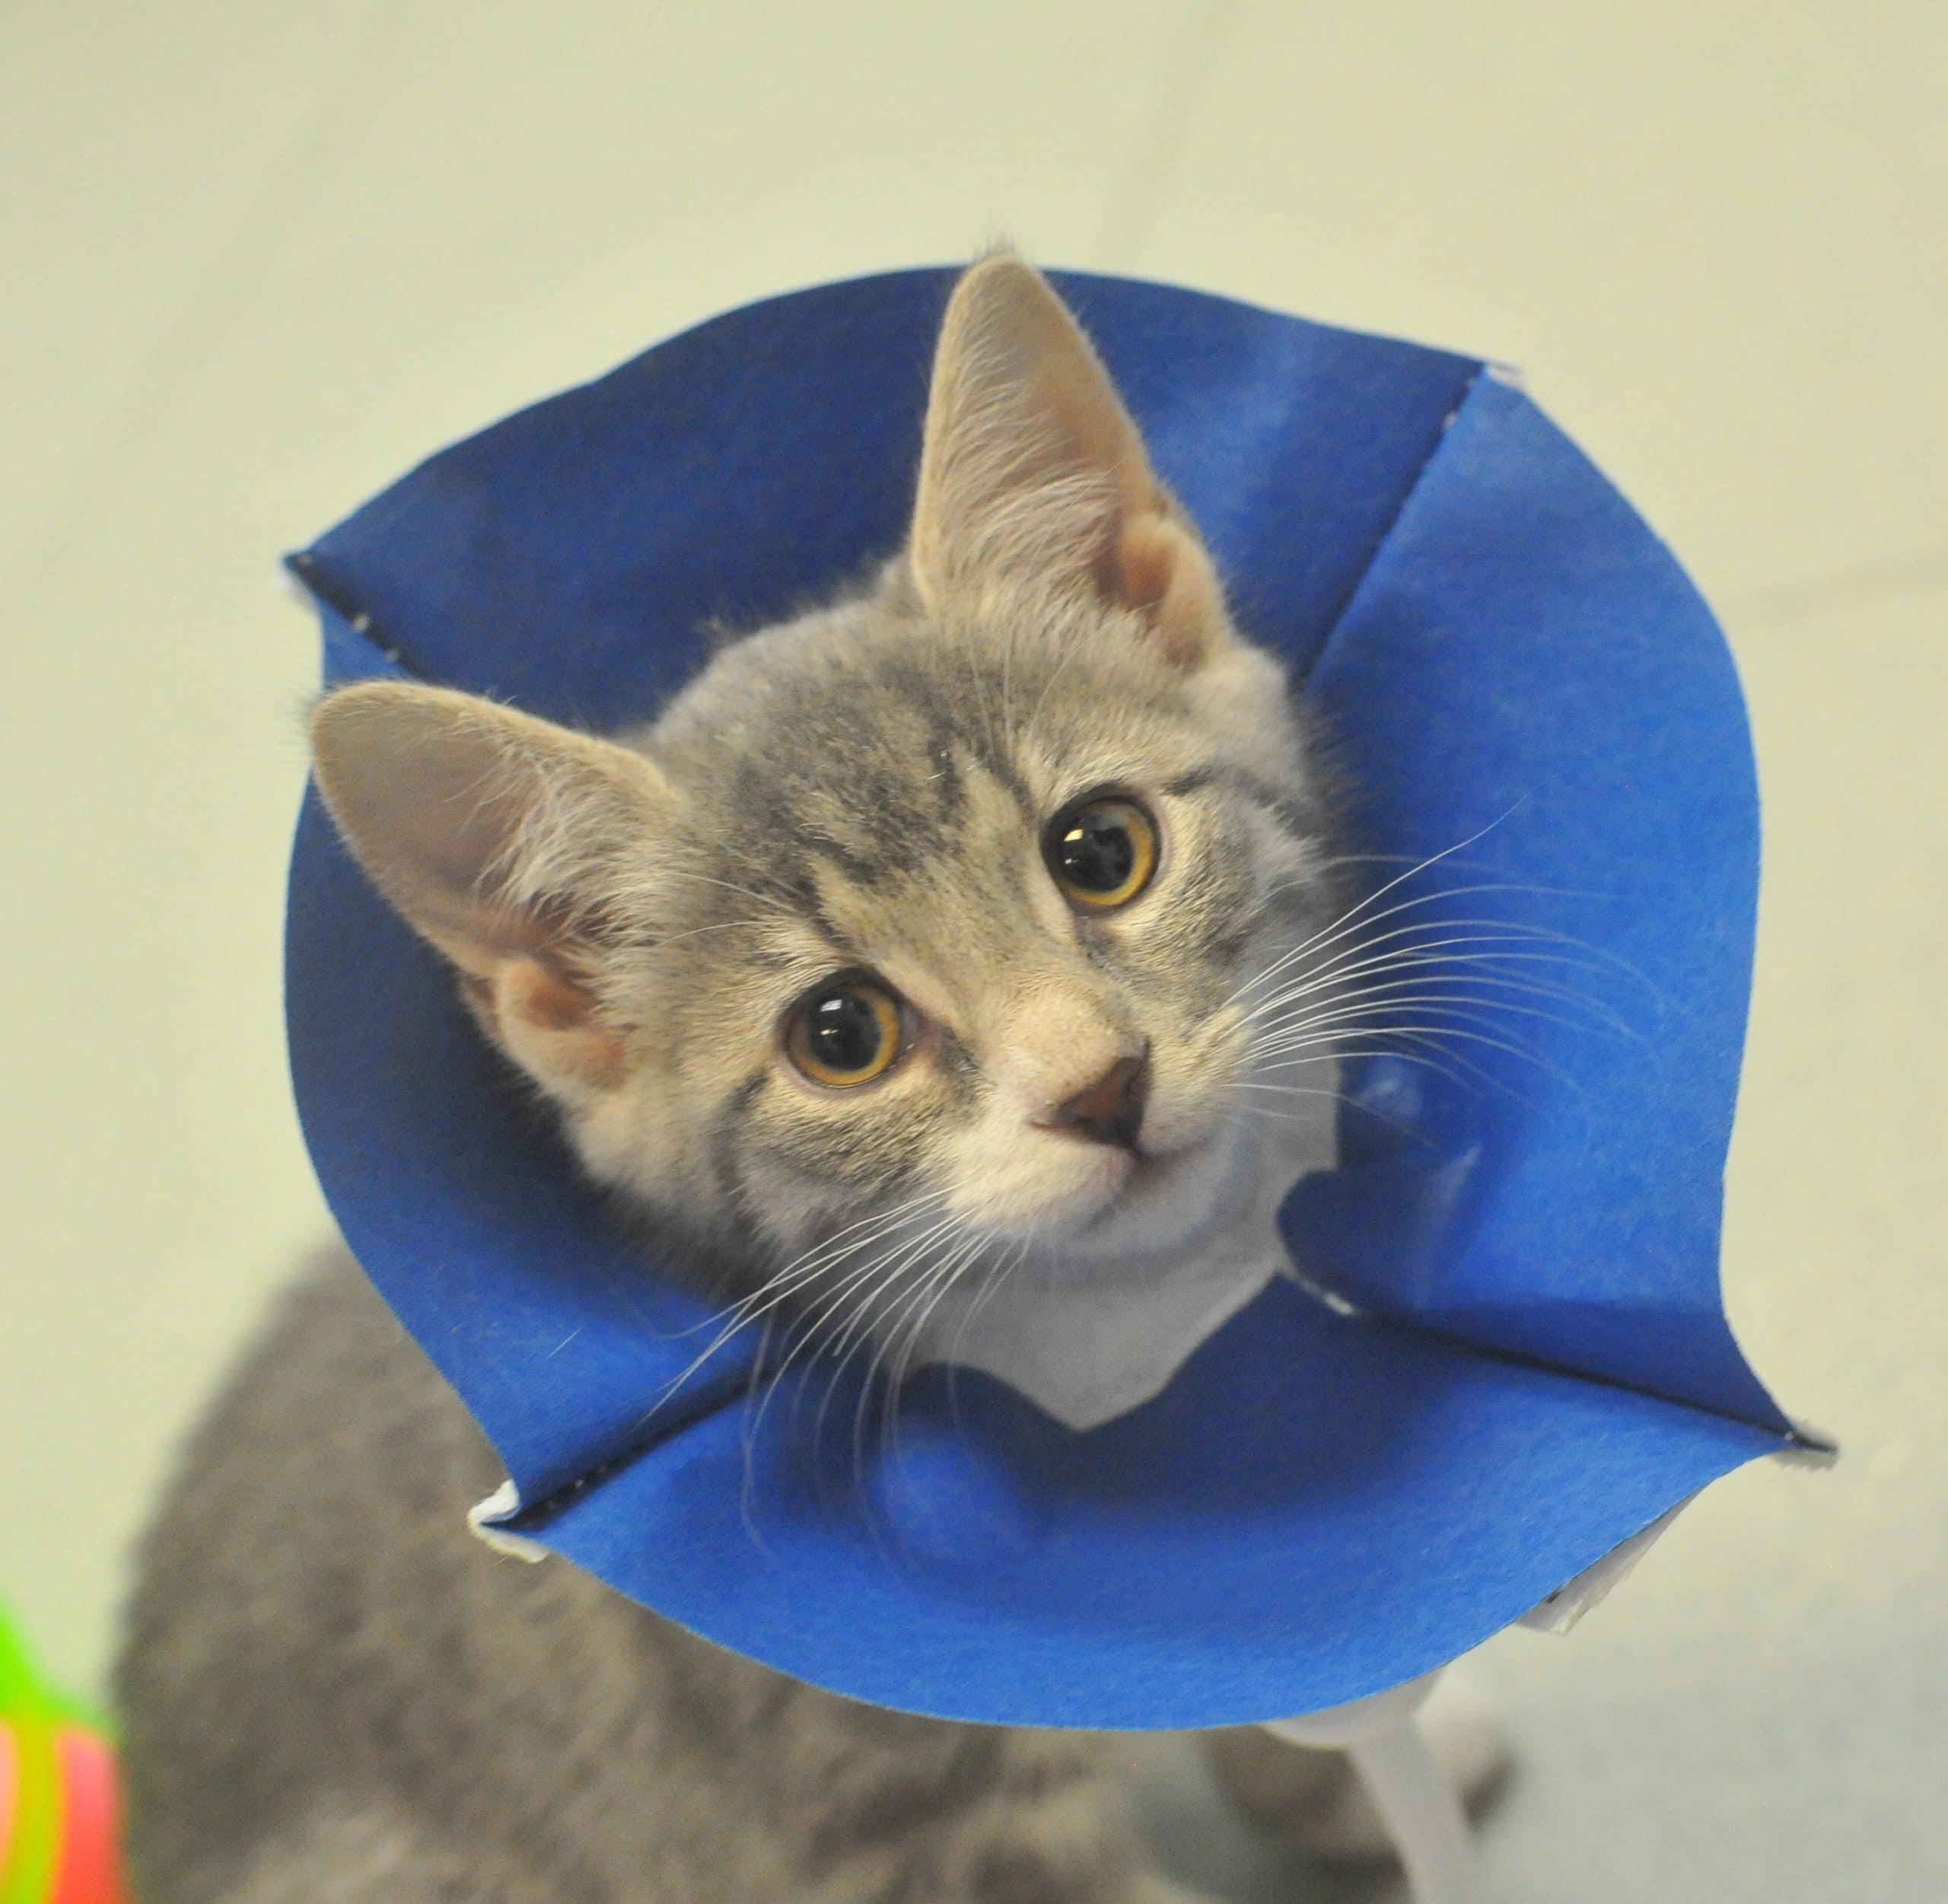 A young kitten with a blue cone around her neck.